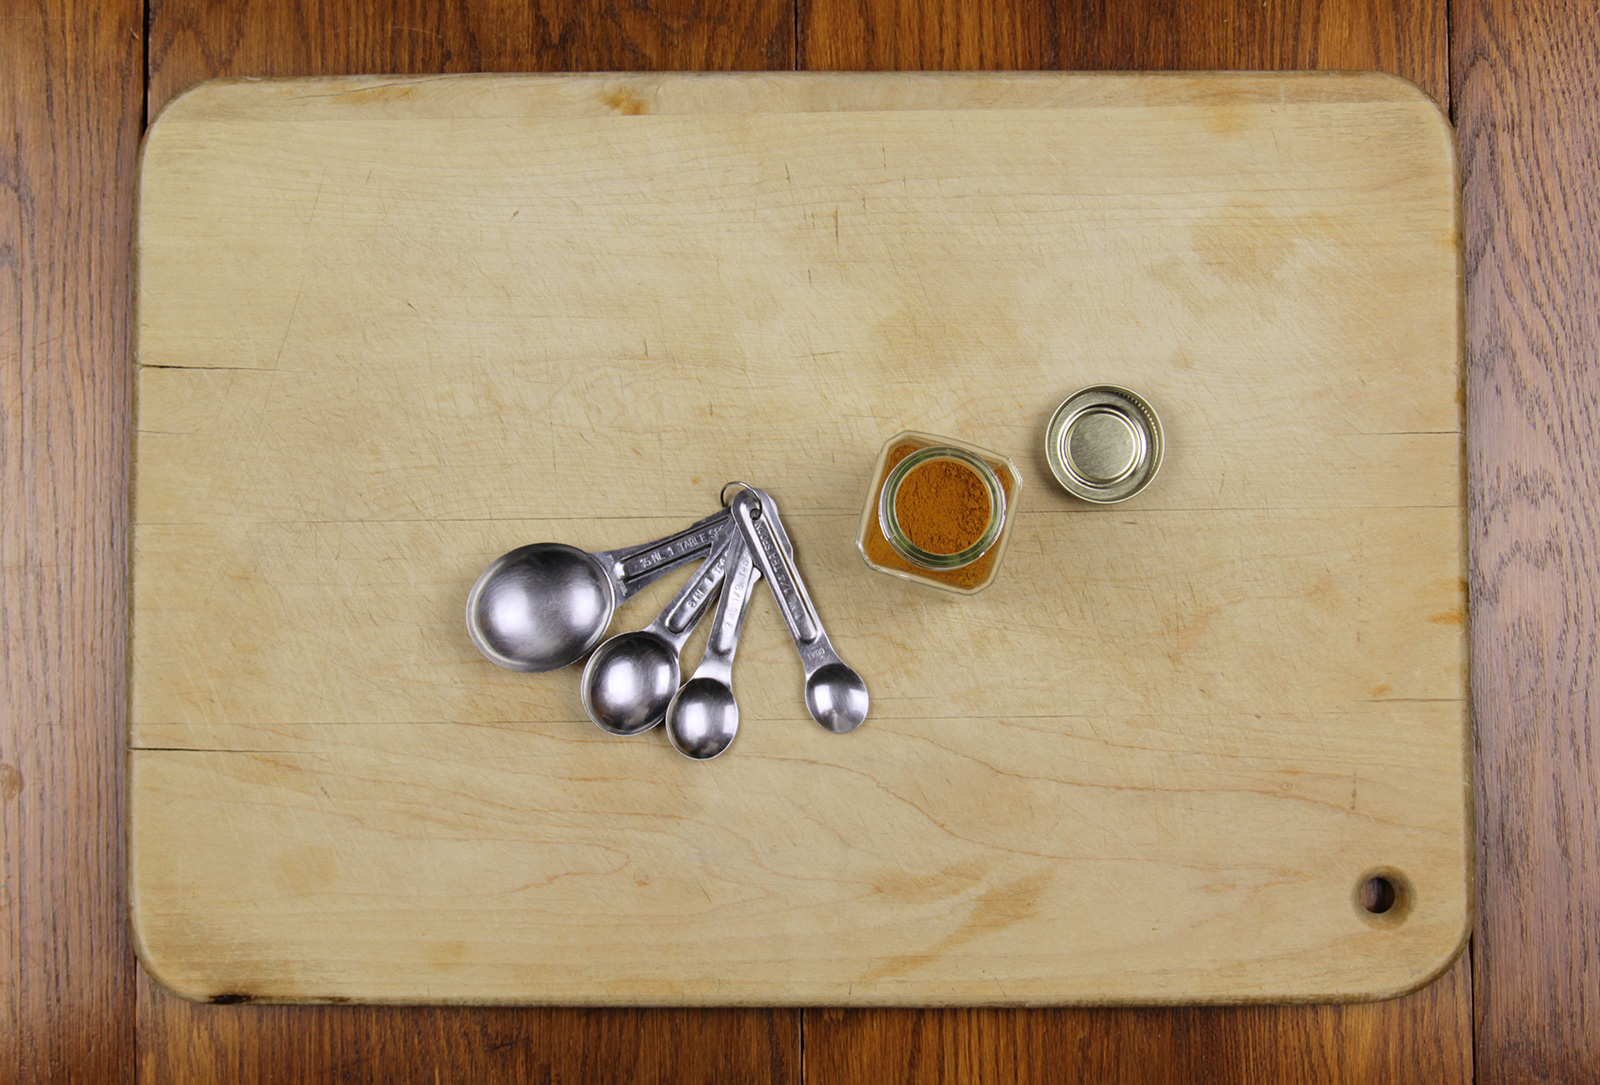 Turmeric powder with measuring spoons on a cutting board.